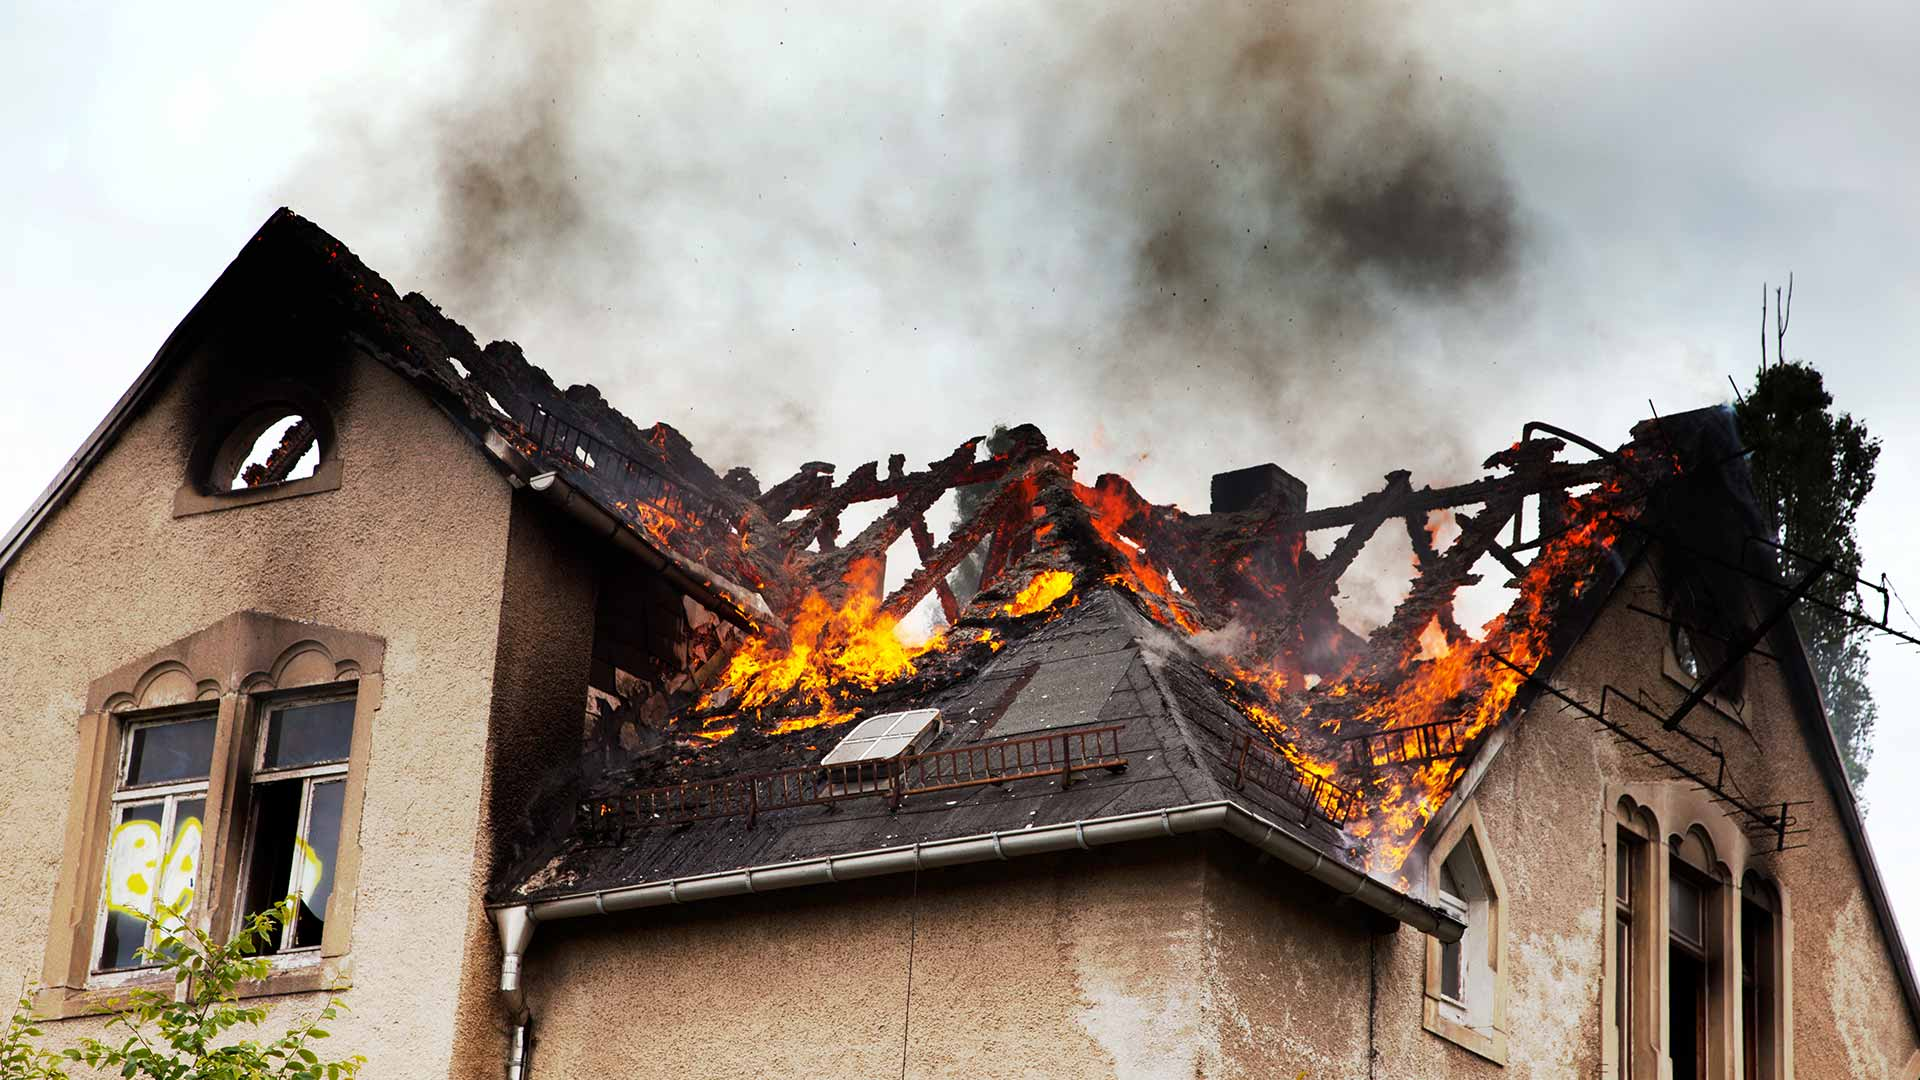 Does Homeowners' Insurance Cover Water & Fire Damage If You're at Fault?